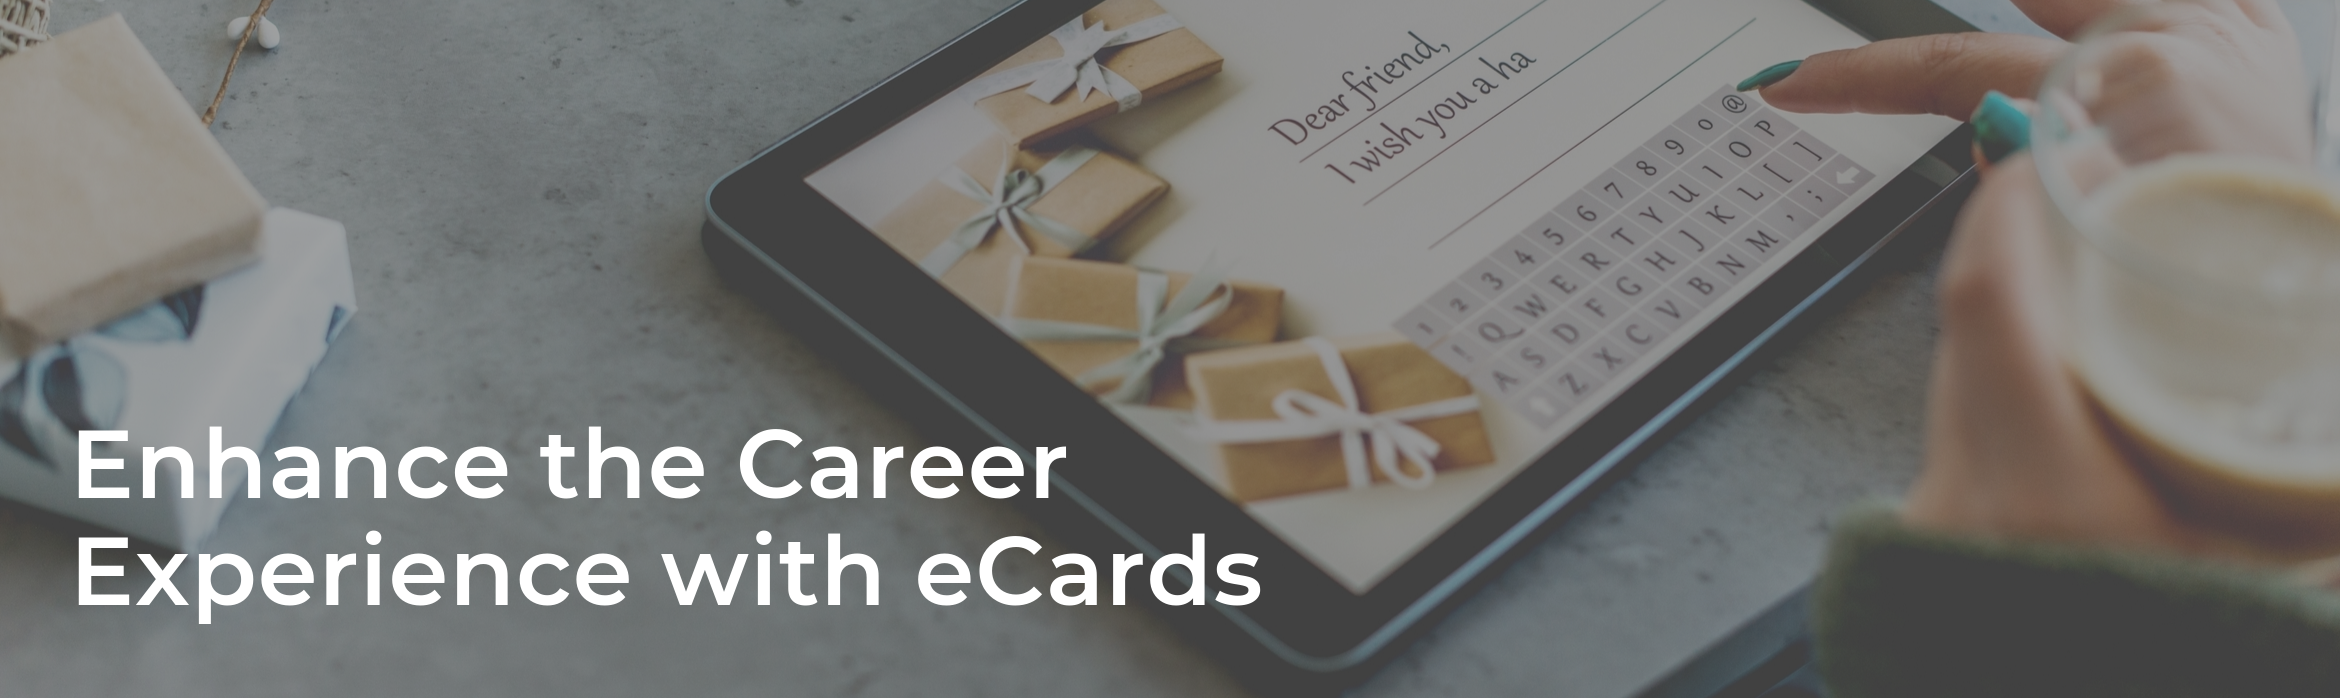 Enhance the Career Experience with eCards